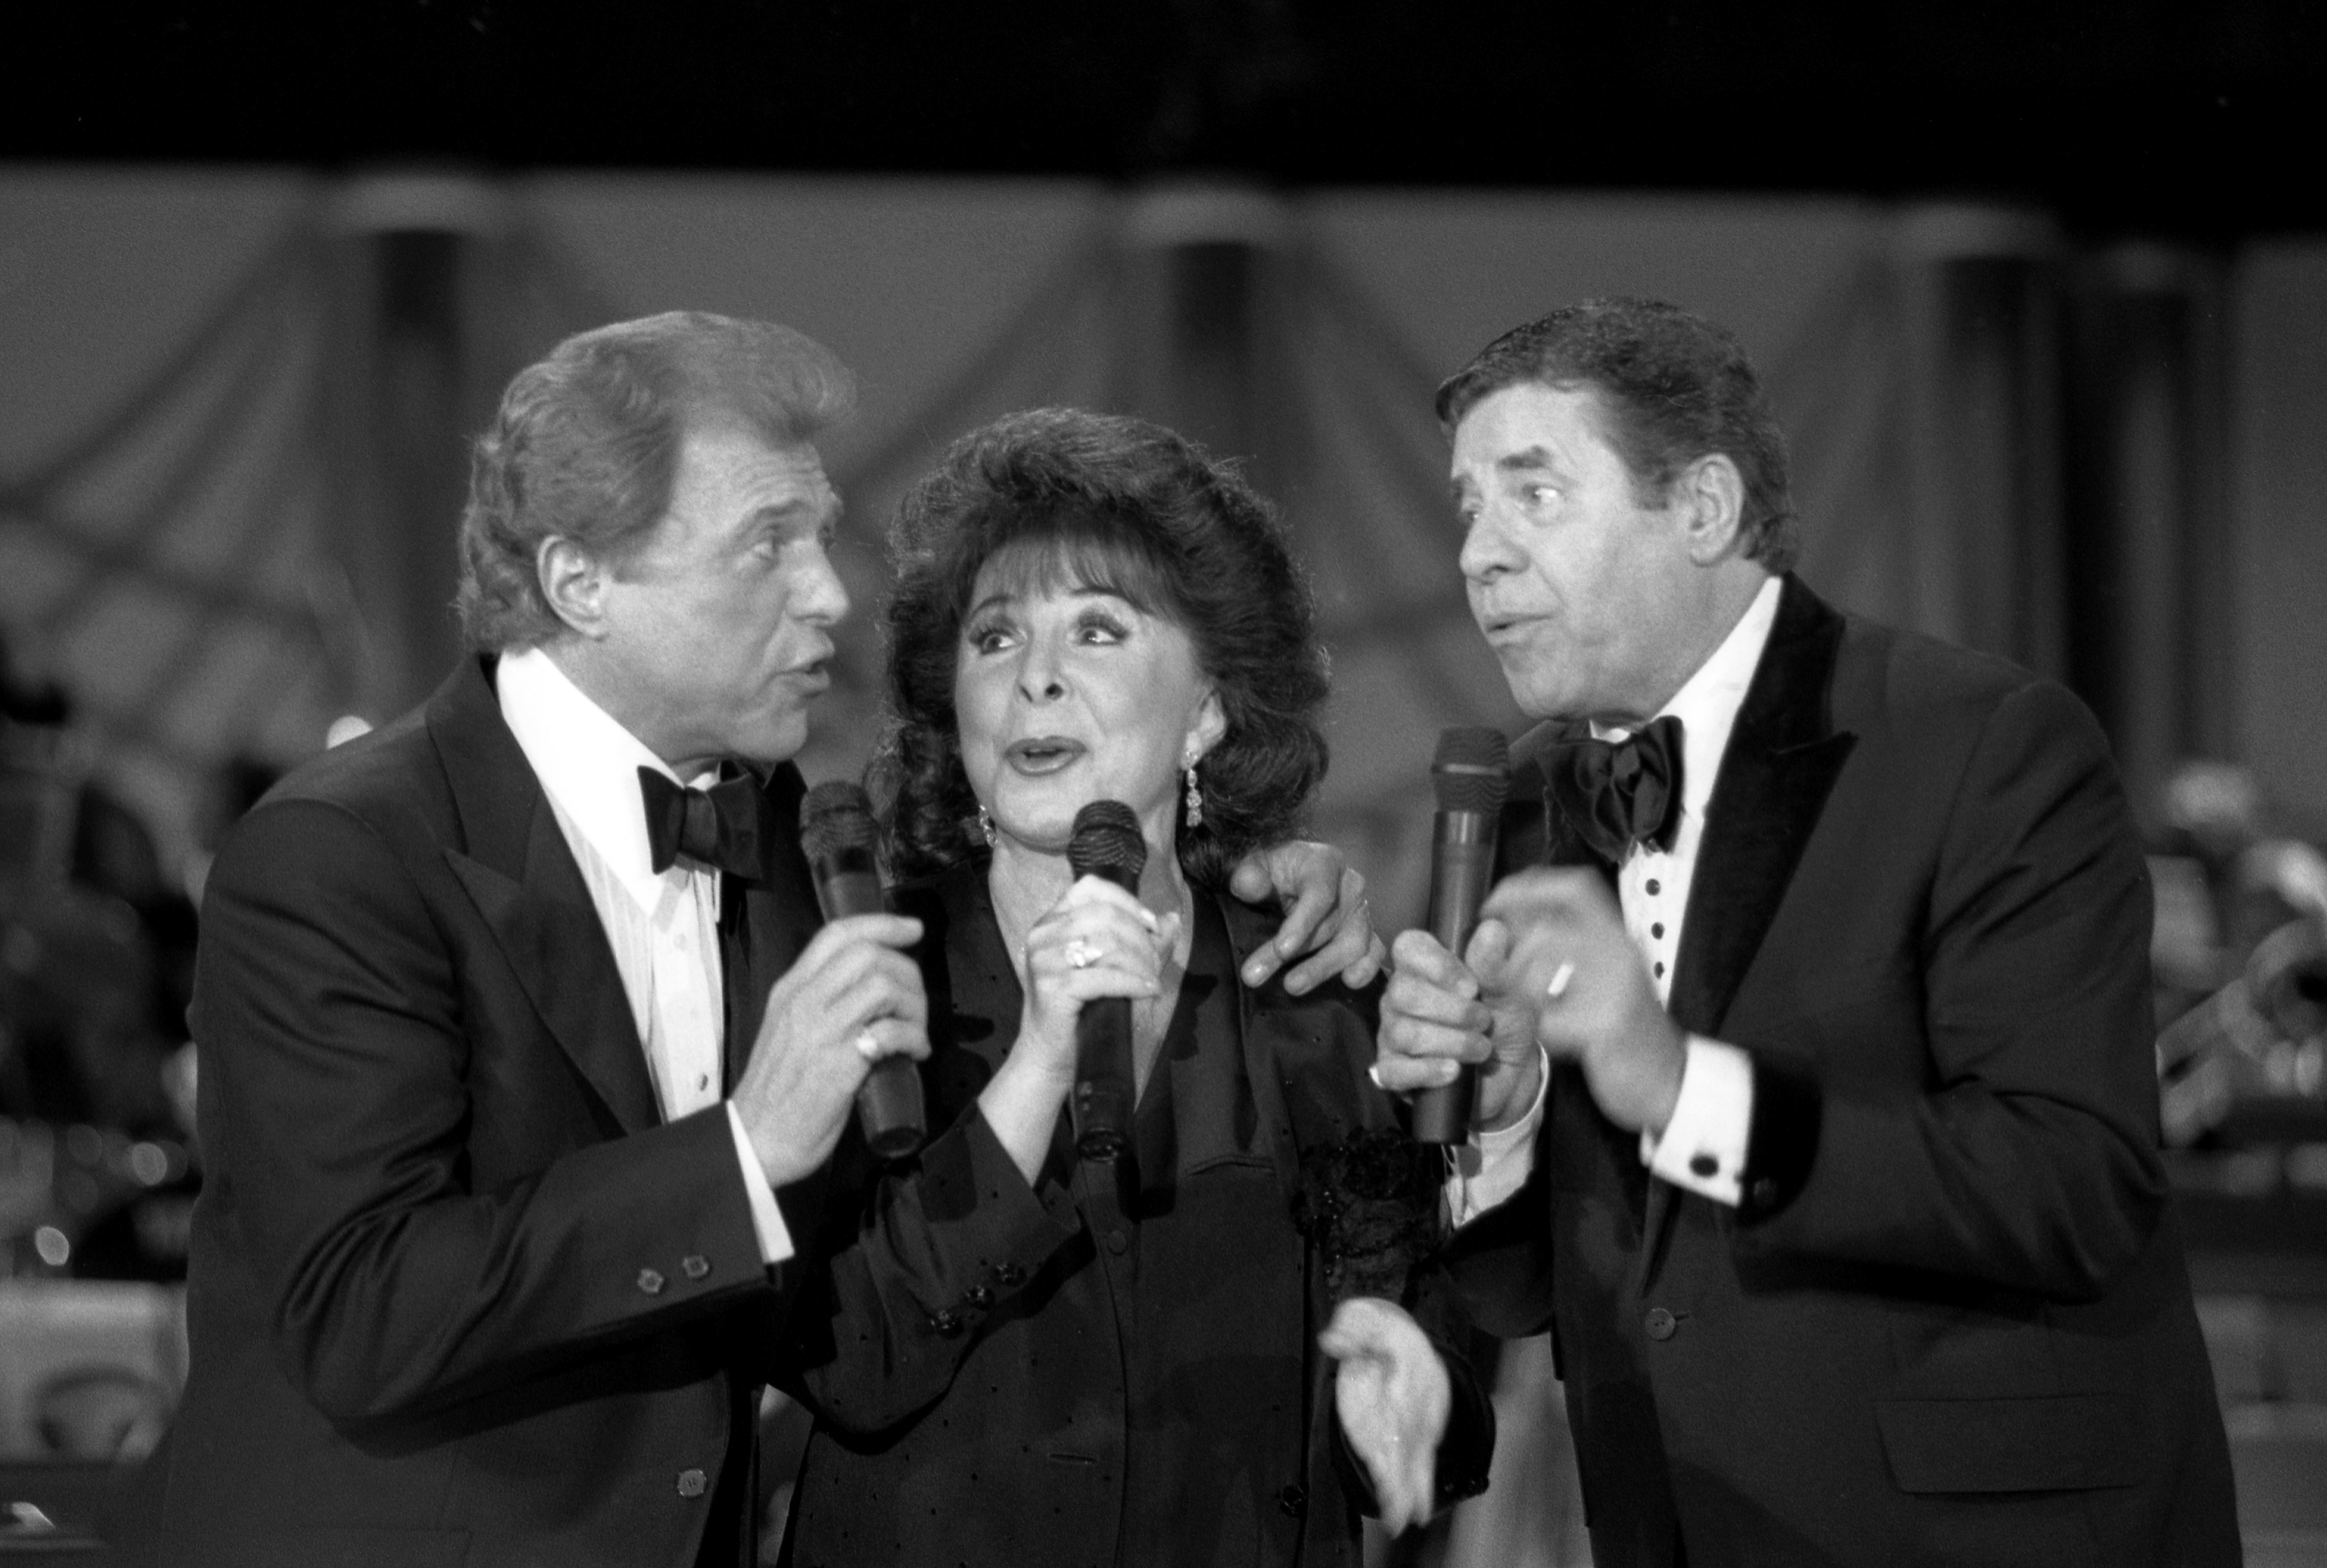 Steve Lawrence, Eydie Gorme & Jerry Lewis at the MDA Telethon @ the Sahara hotel. 9-6-93. Darrin Bush/Las Vegas News Bureau